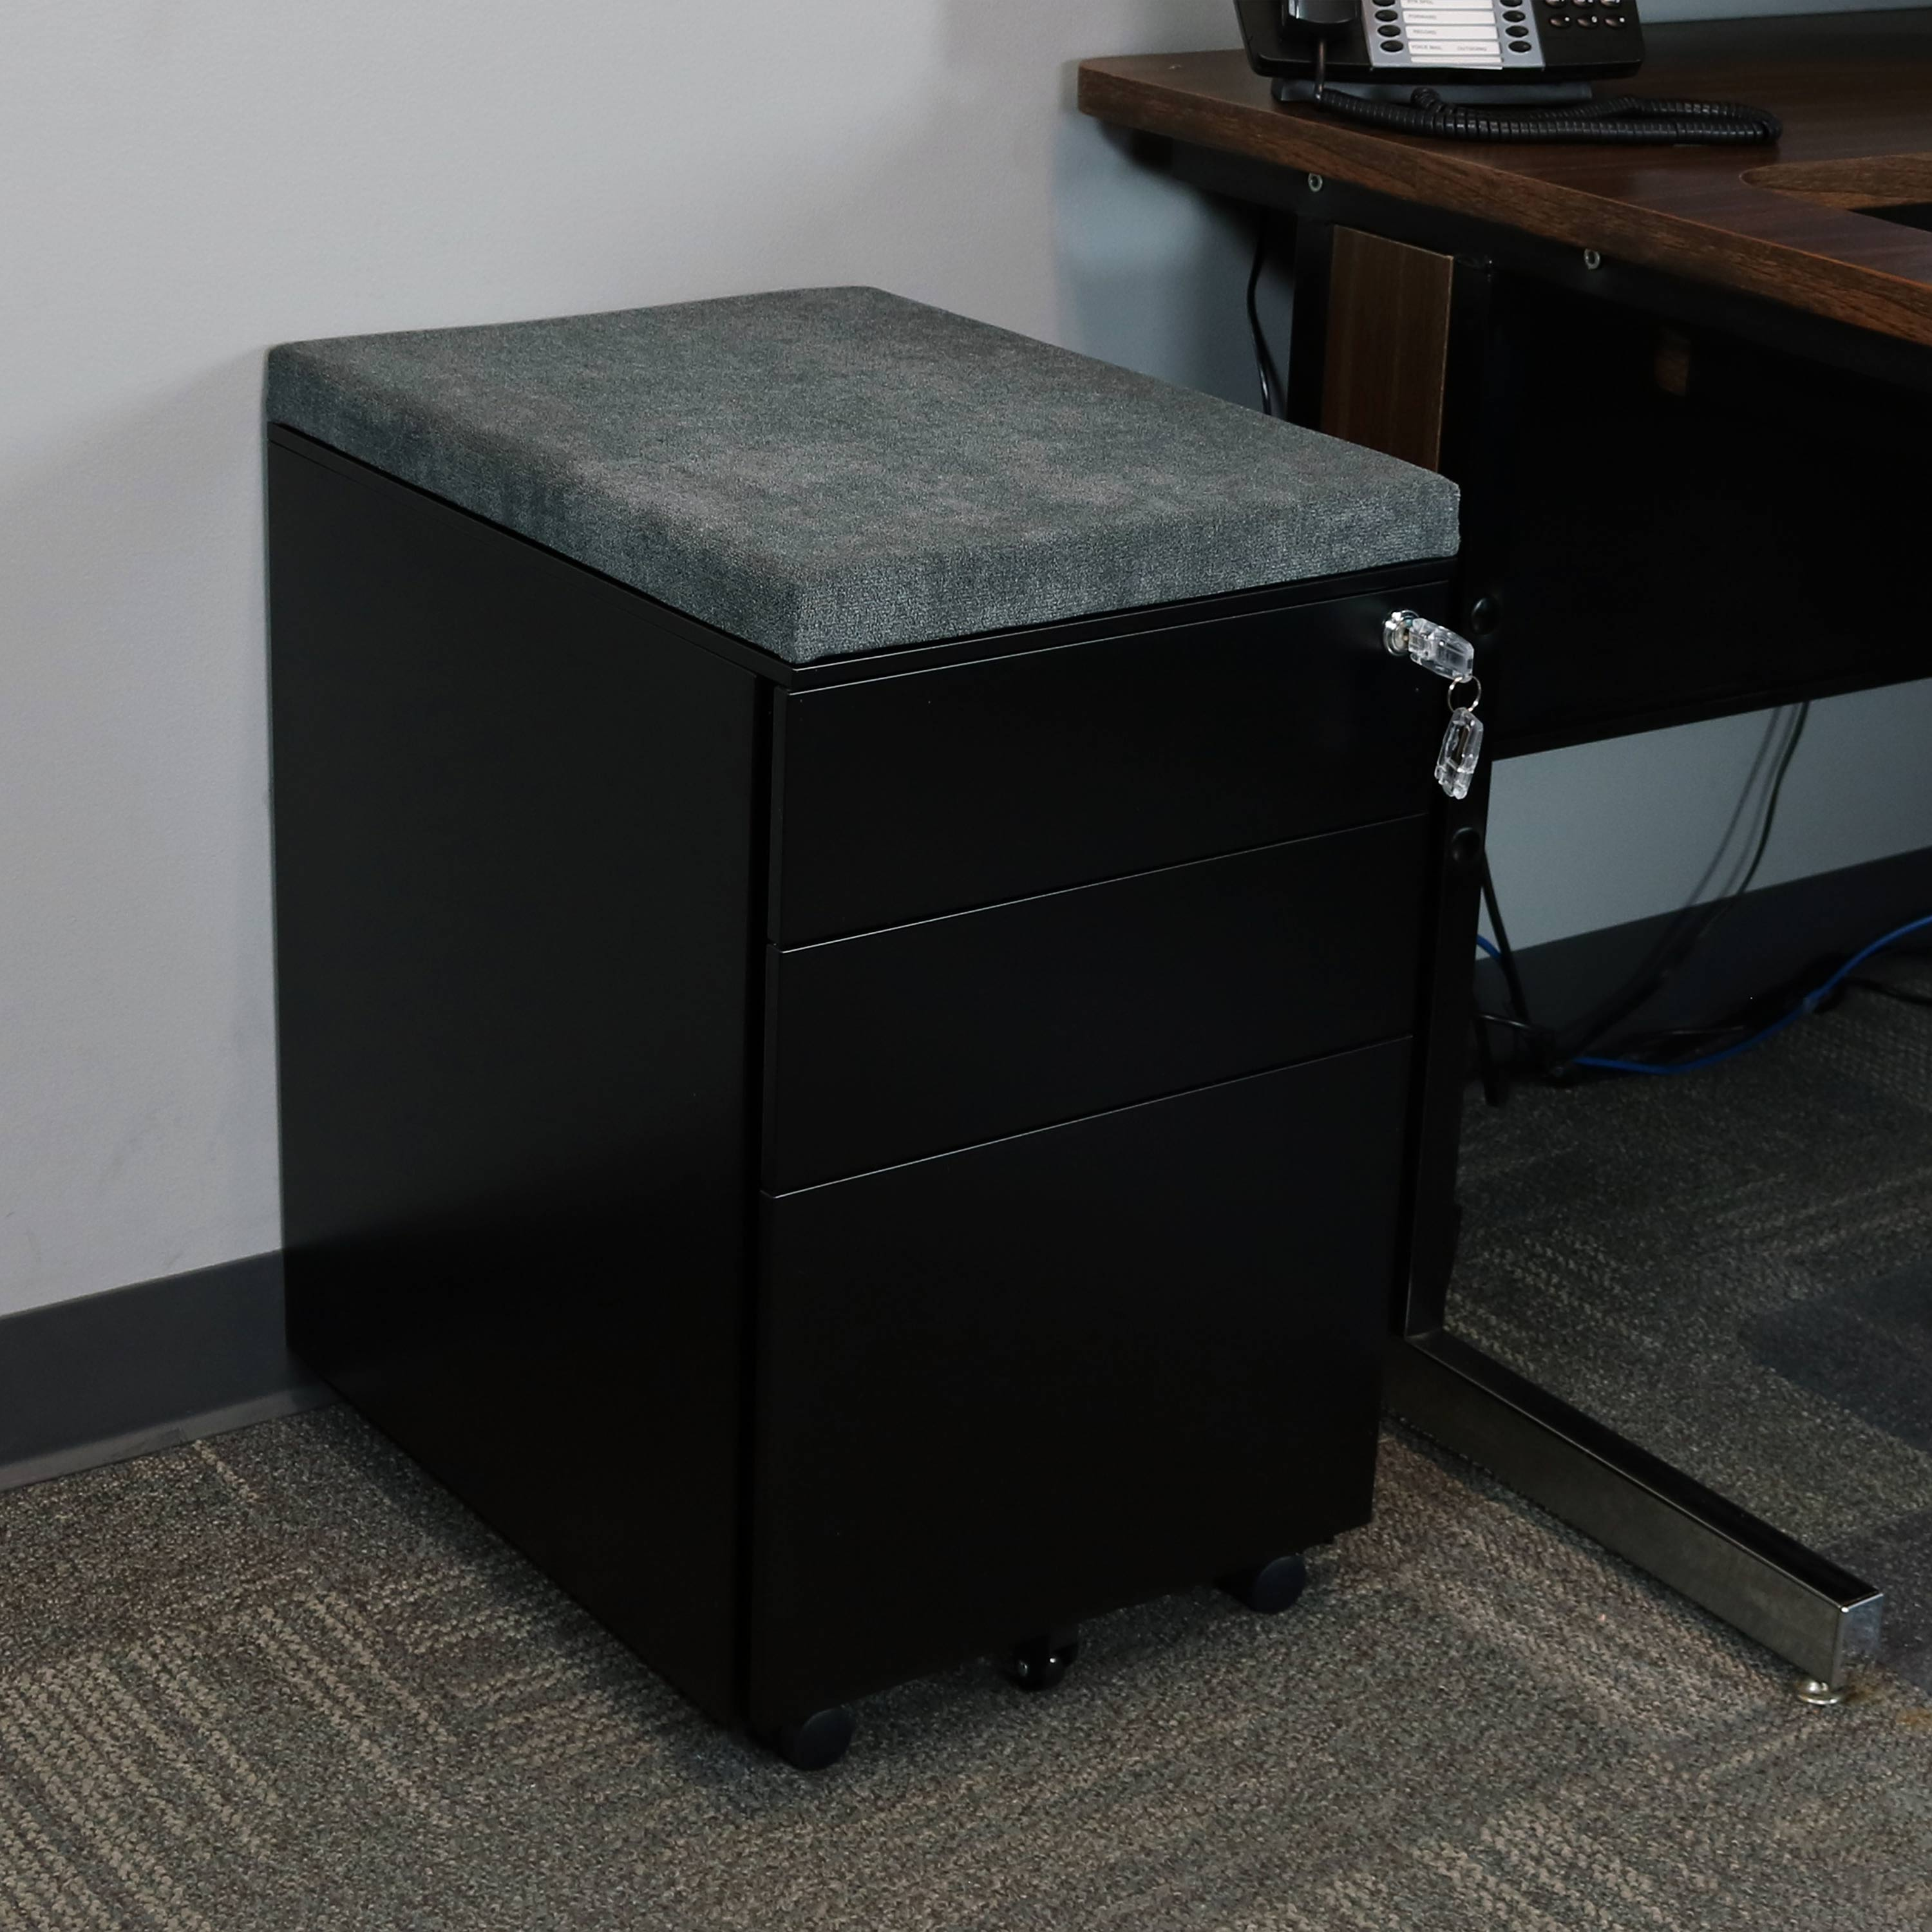 Black and Gray Mobile File Cabinet